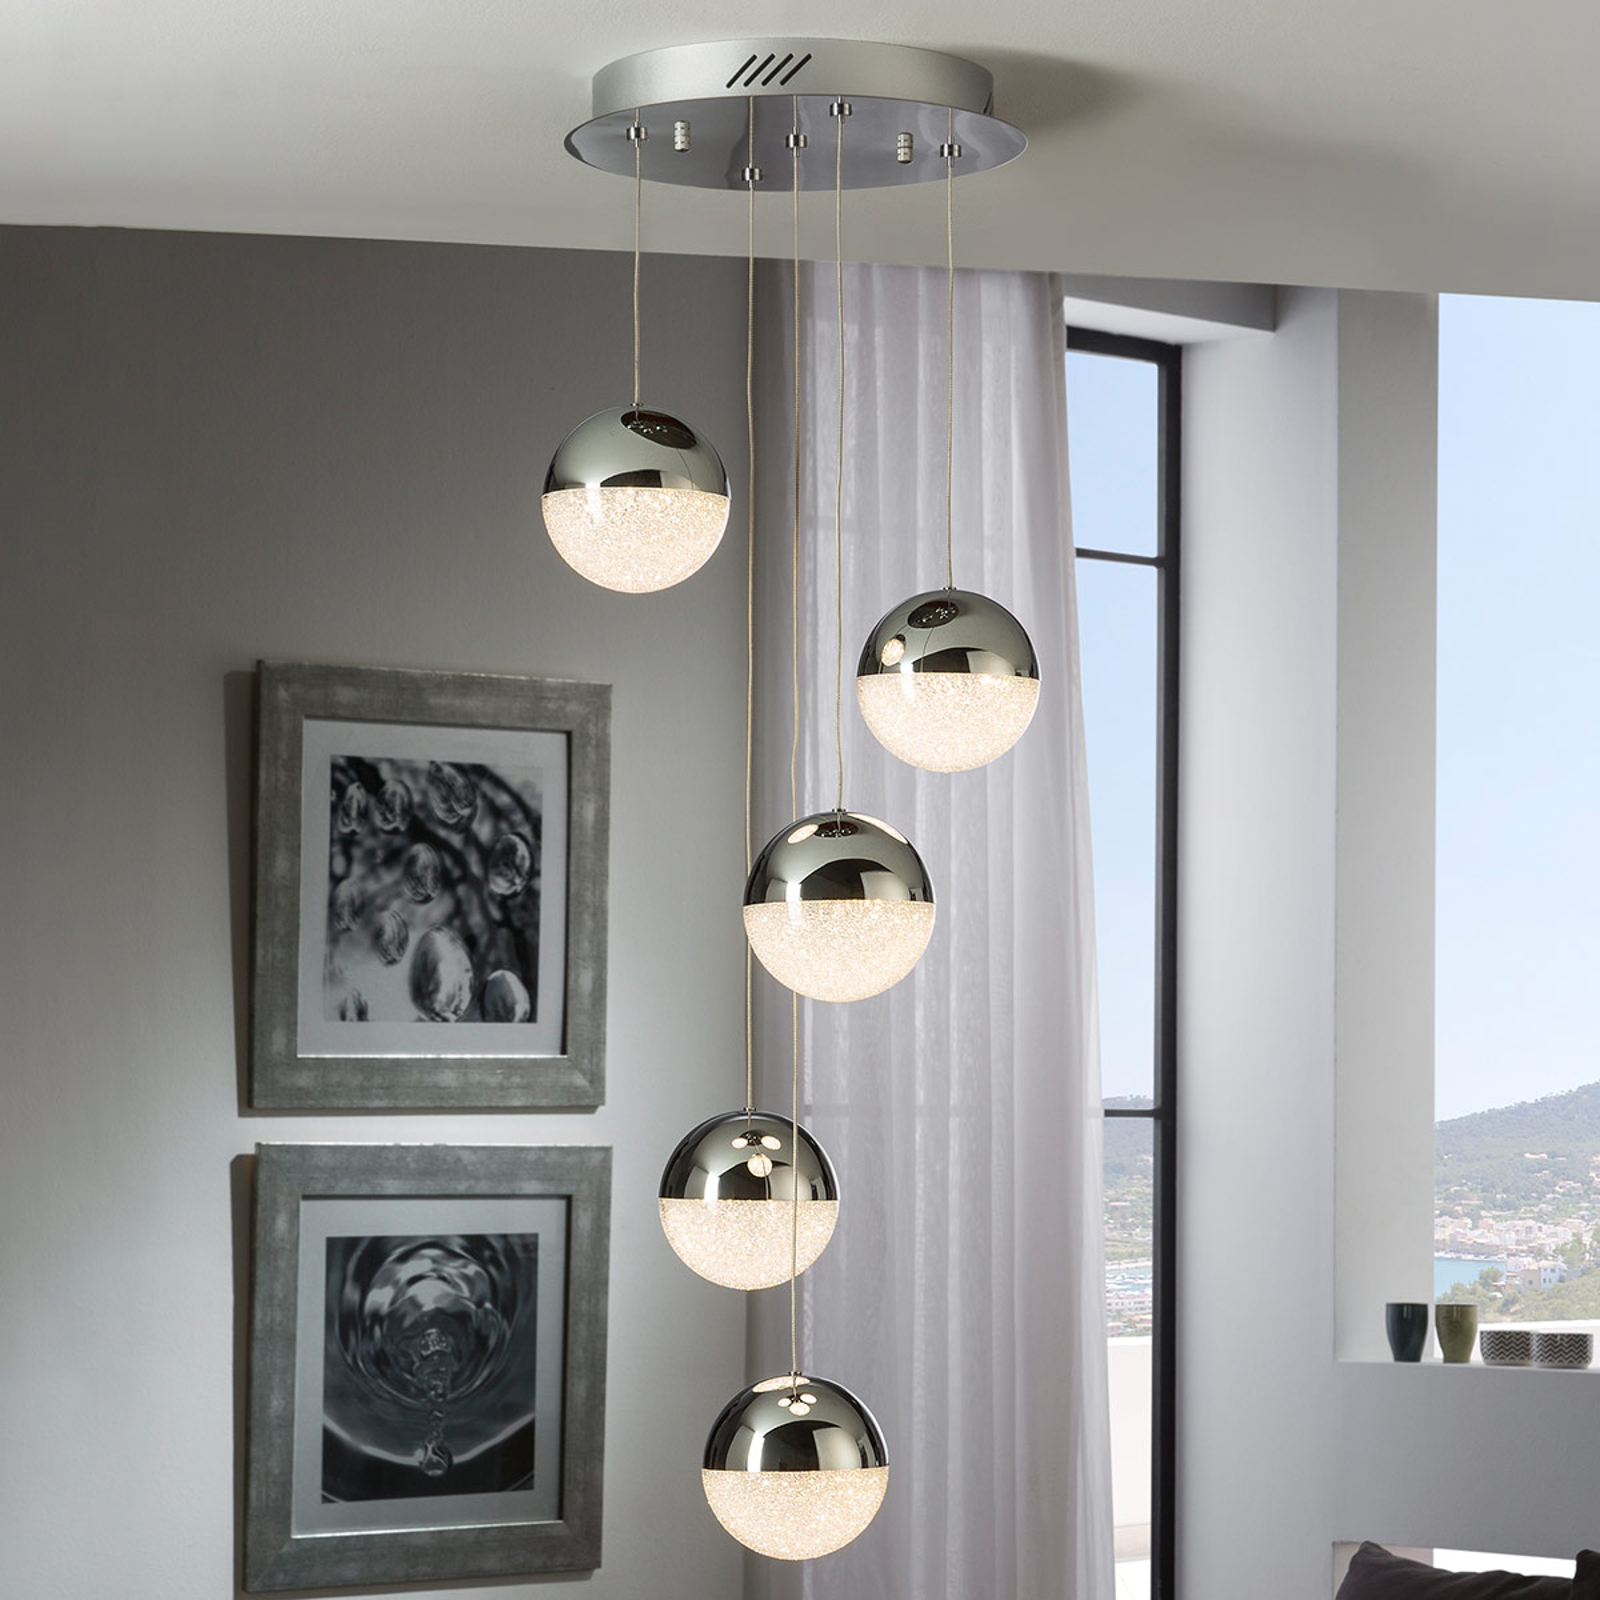 LED hanglamp Sphere, 5-lamps, chroom